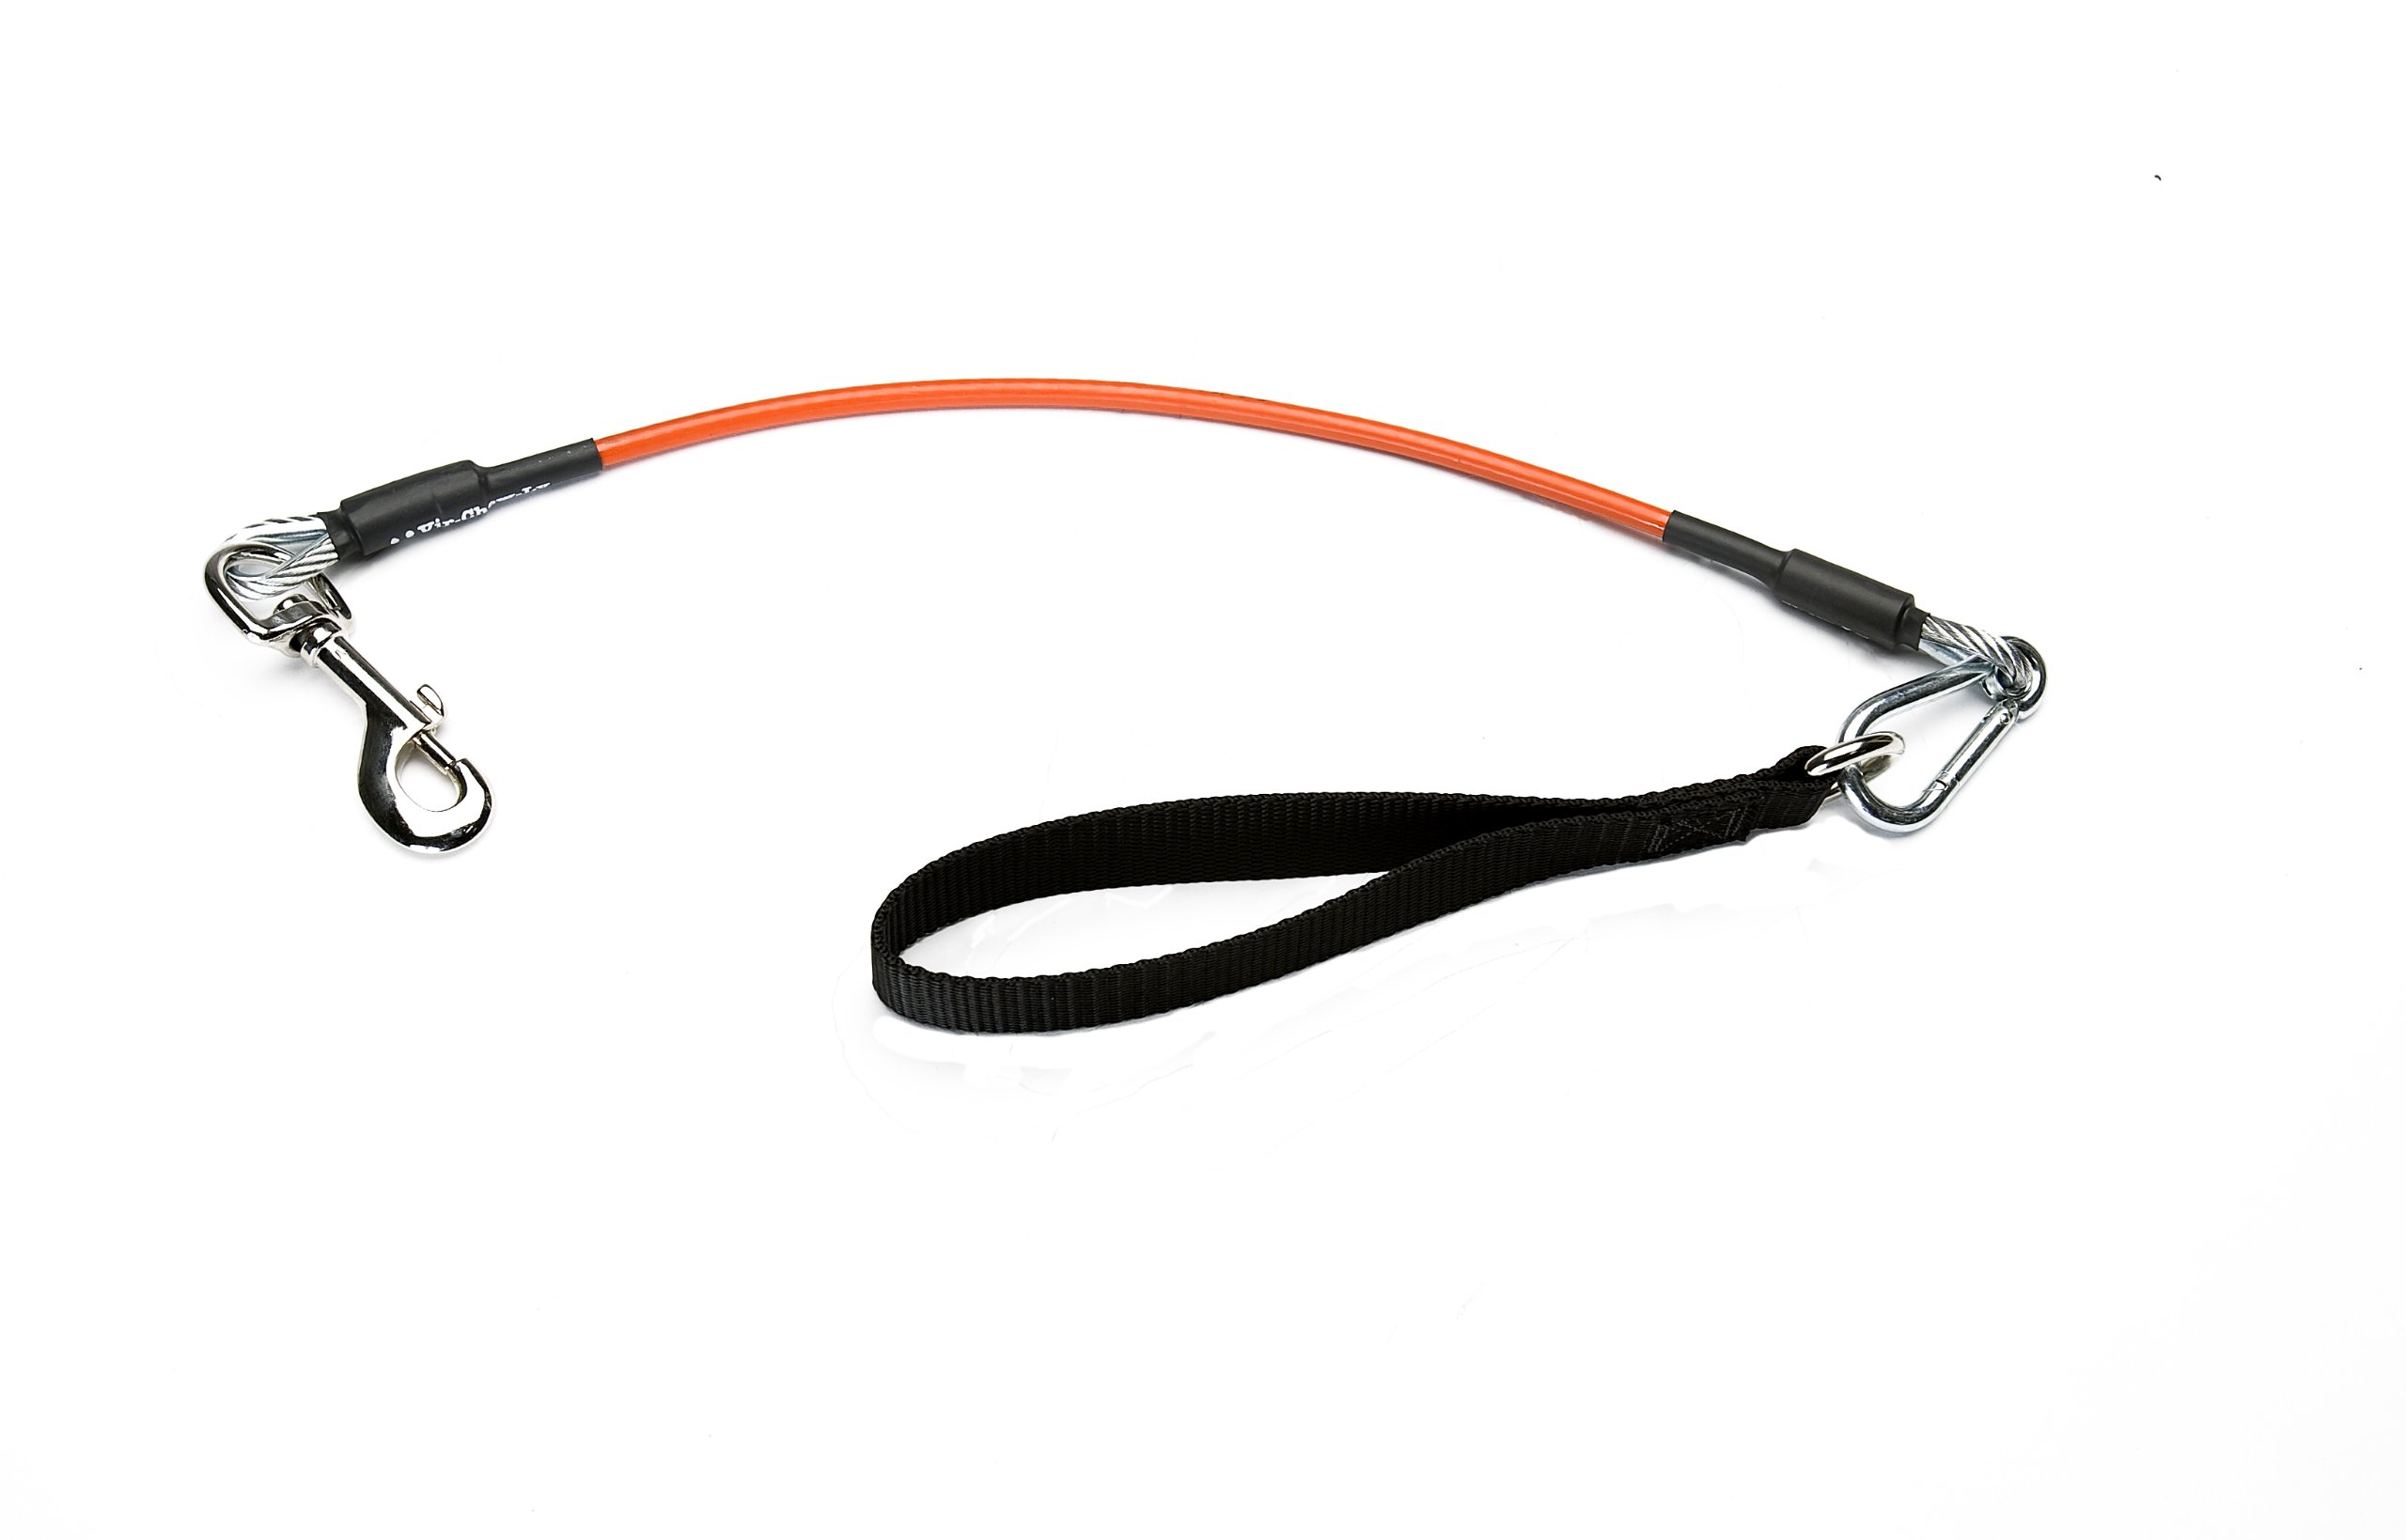 VirChewLy Indestructible Traffic Lead for Dogs, 30'', Large, Orange